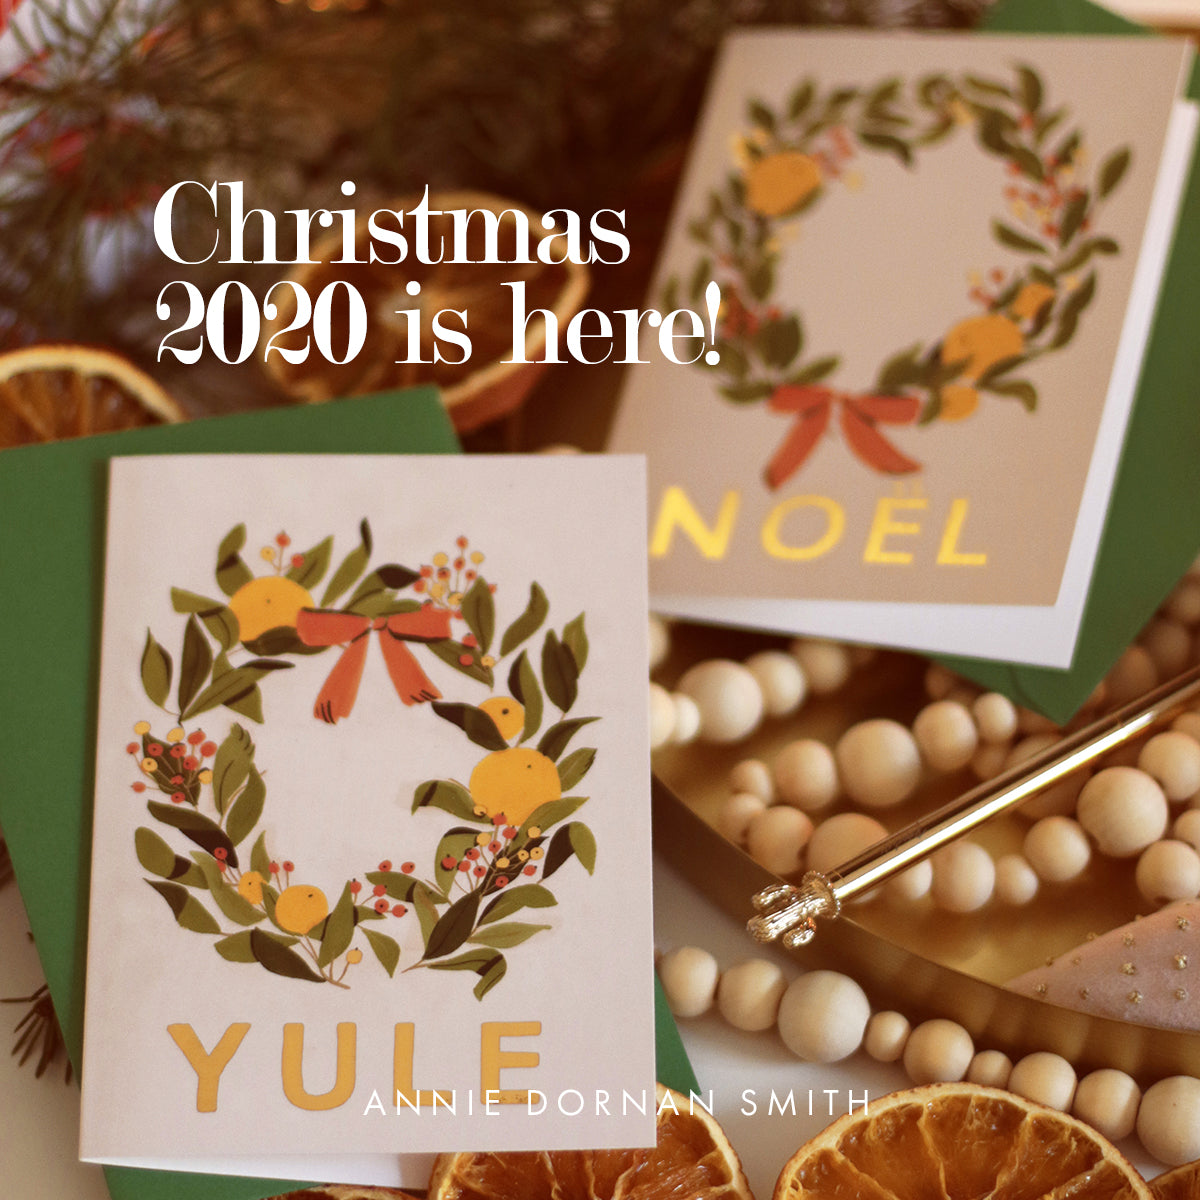 Christmas 2020 Is here! - A Look at new arrivals for 2020